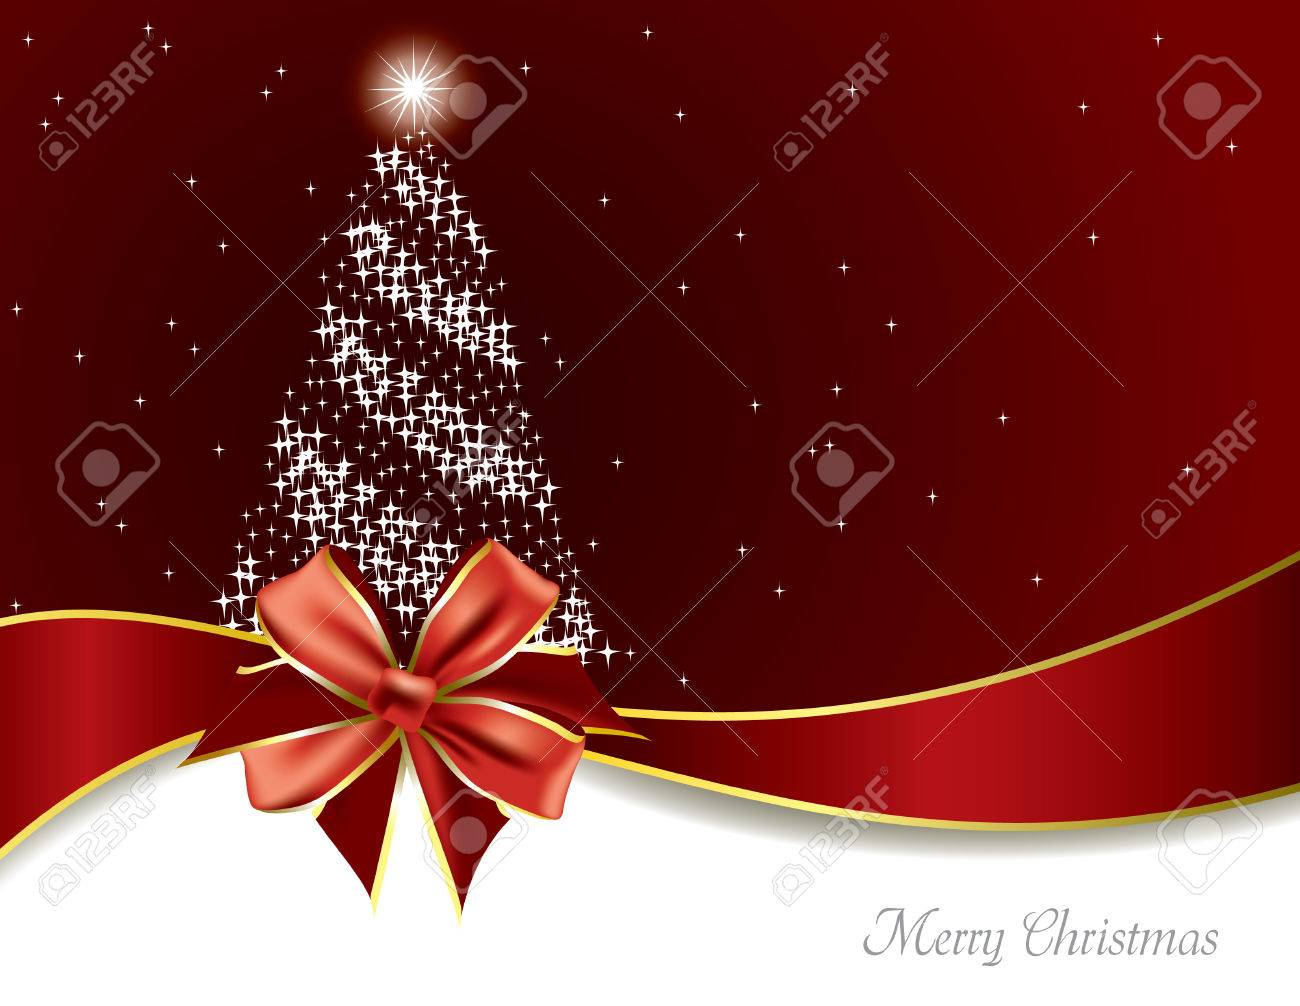 Christmas Background Stock Vector - 23549839